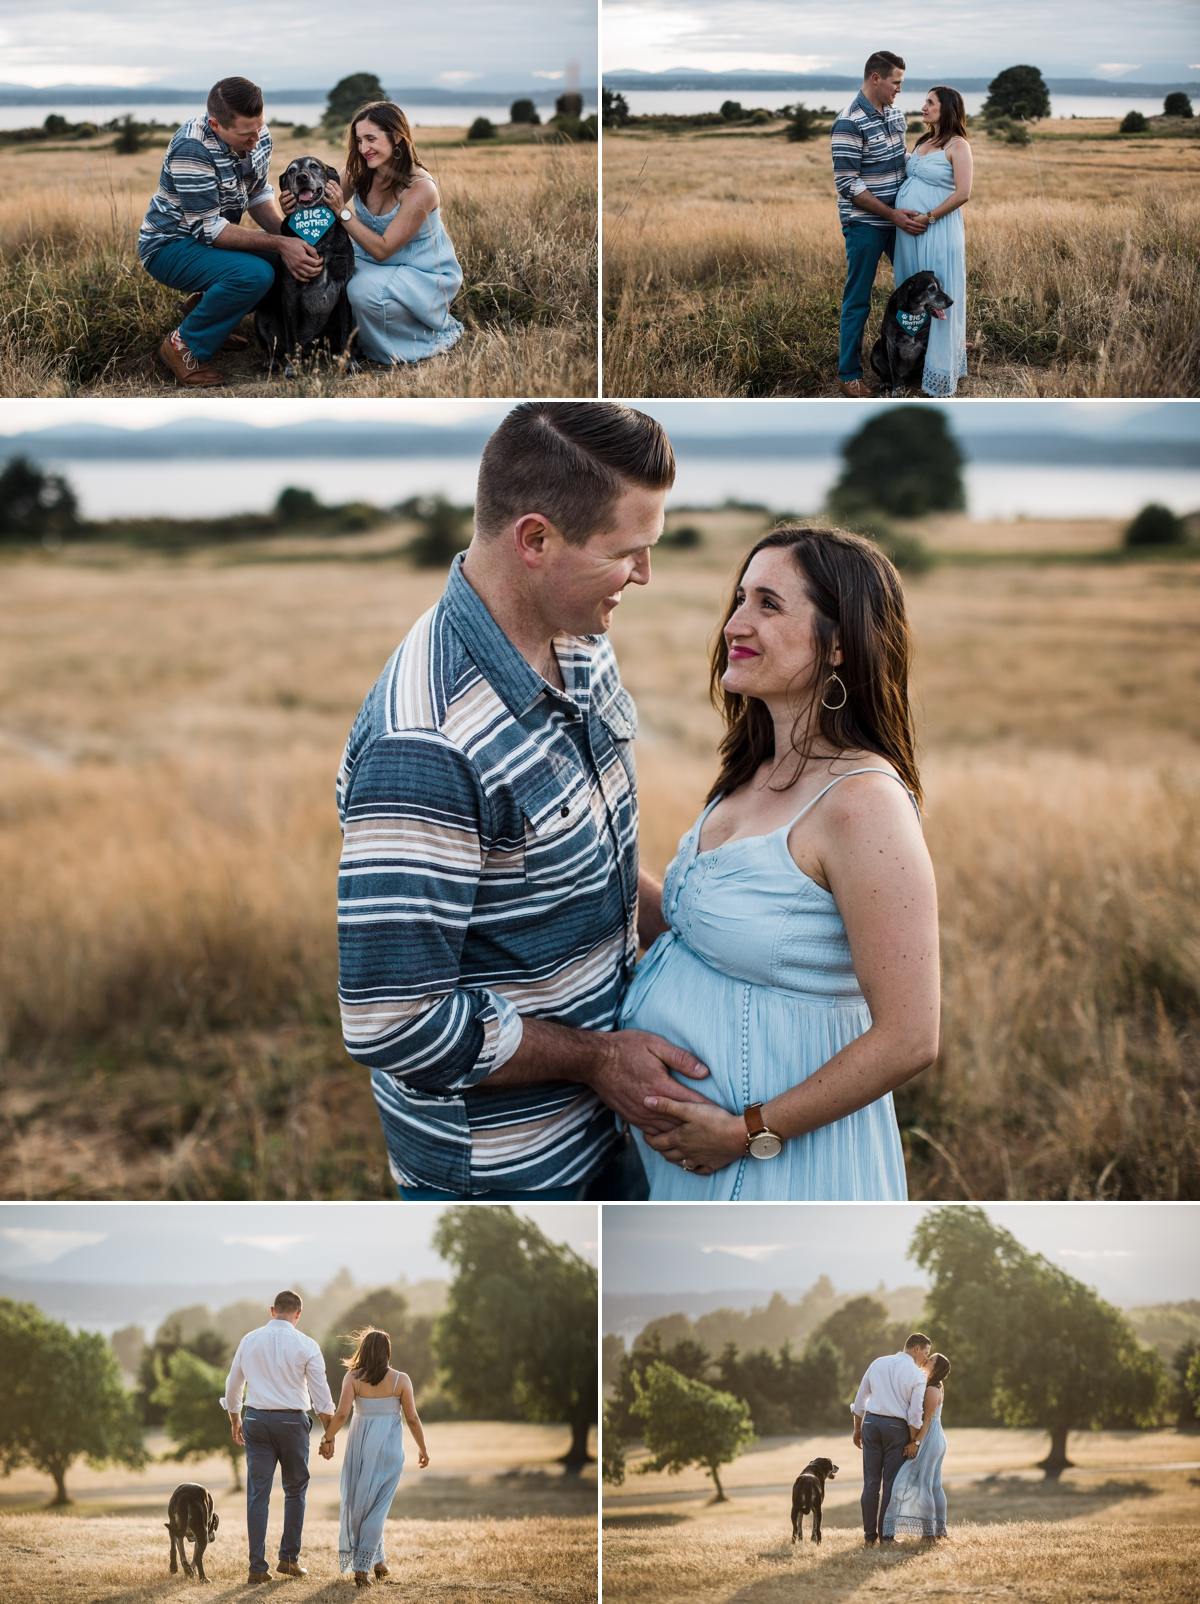 seattle maternity photographer  connected lifestyle maternity photography elena s blair 6.jpg